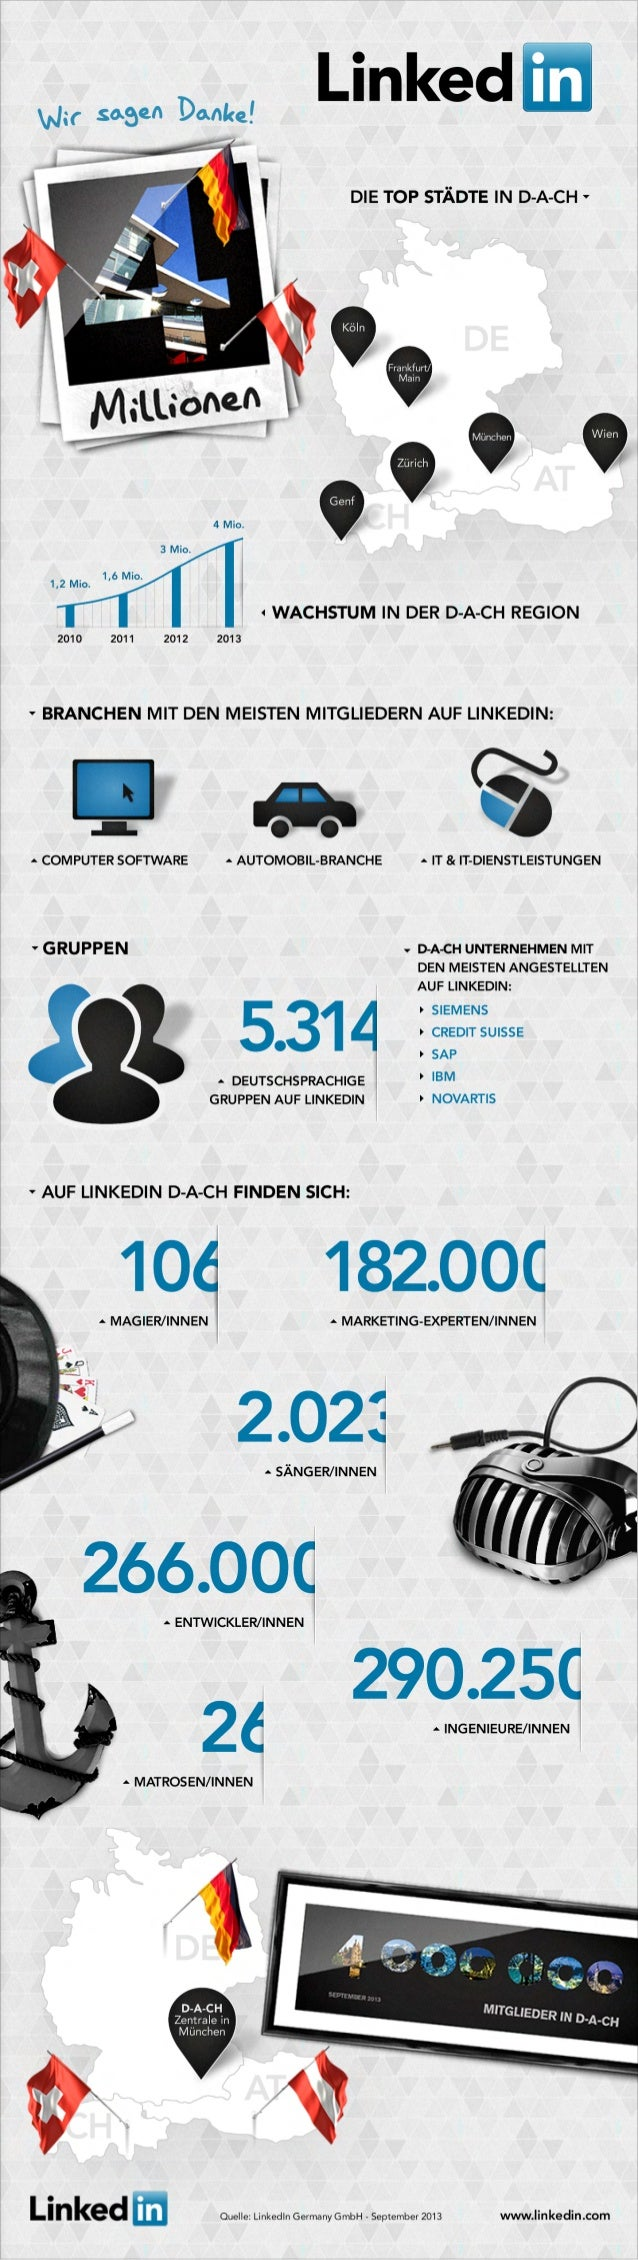 MARKETING-EXPERTEN/INNEN 182.000 INGENIEURE/INNEN 290.250 MATROSEN/INNEN 26 MAGIER/INNEN SIEMENS CREDIT SUISSE SAP IBM 106...